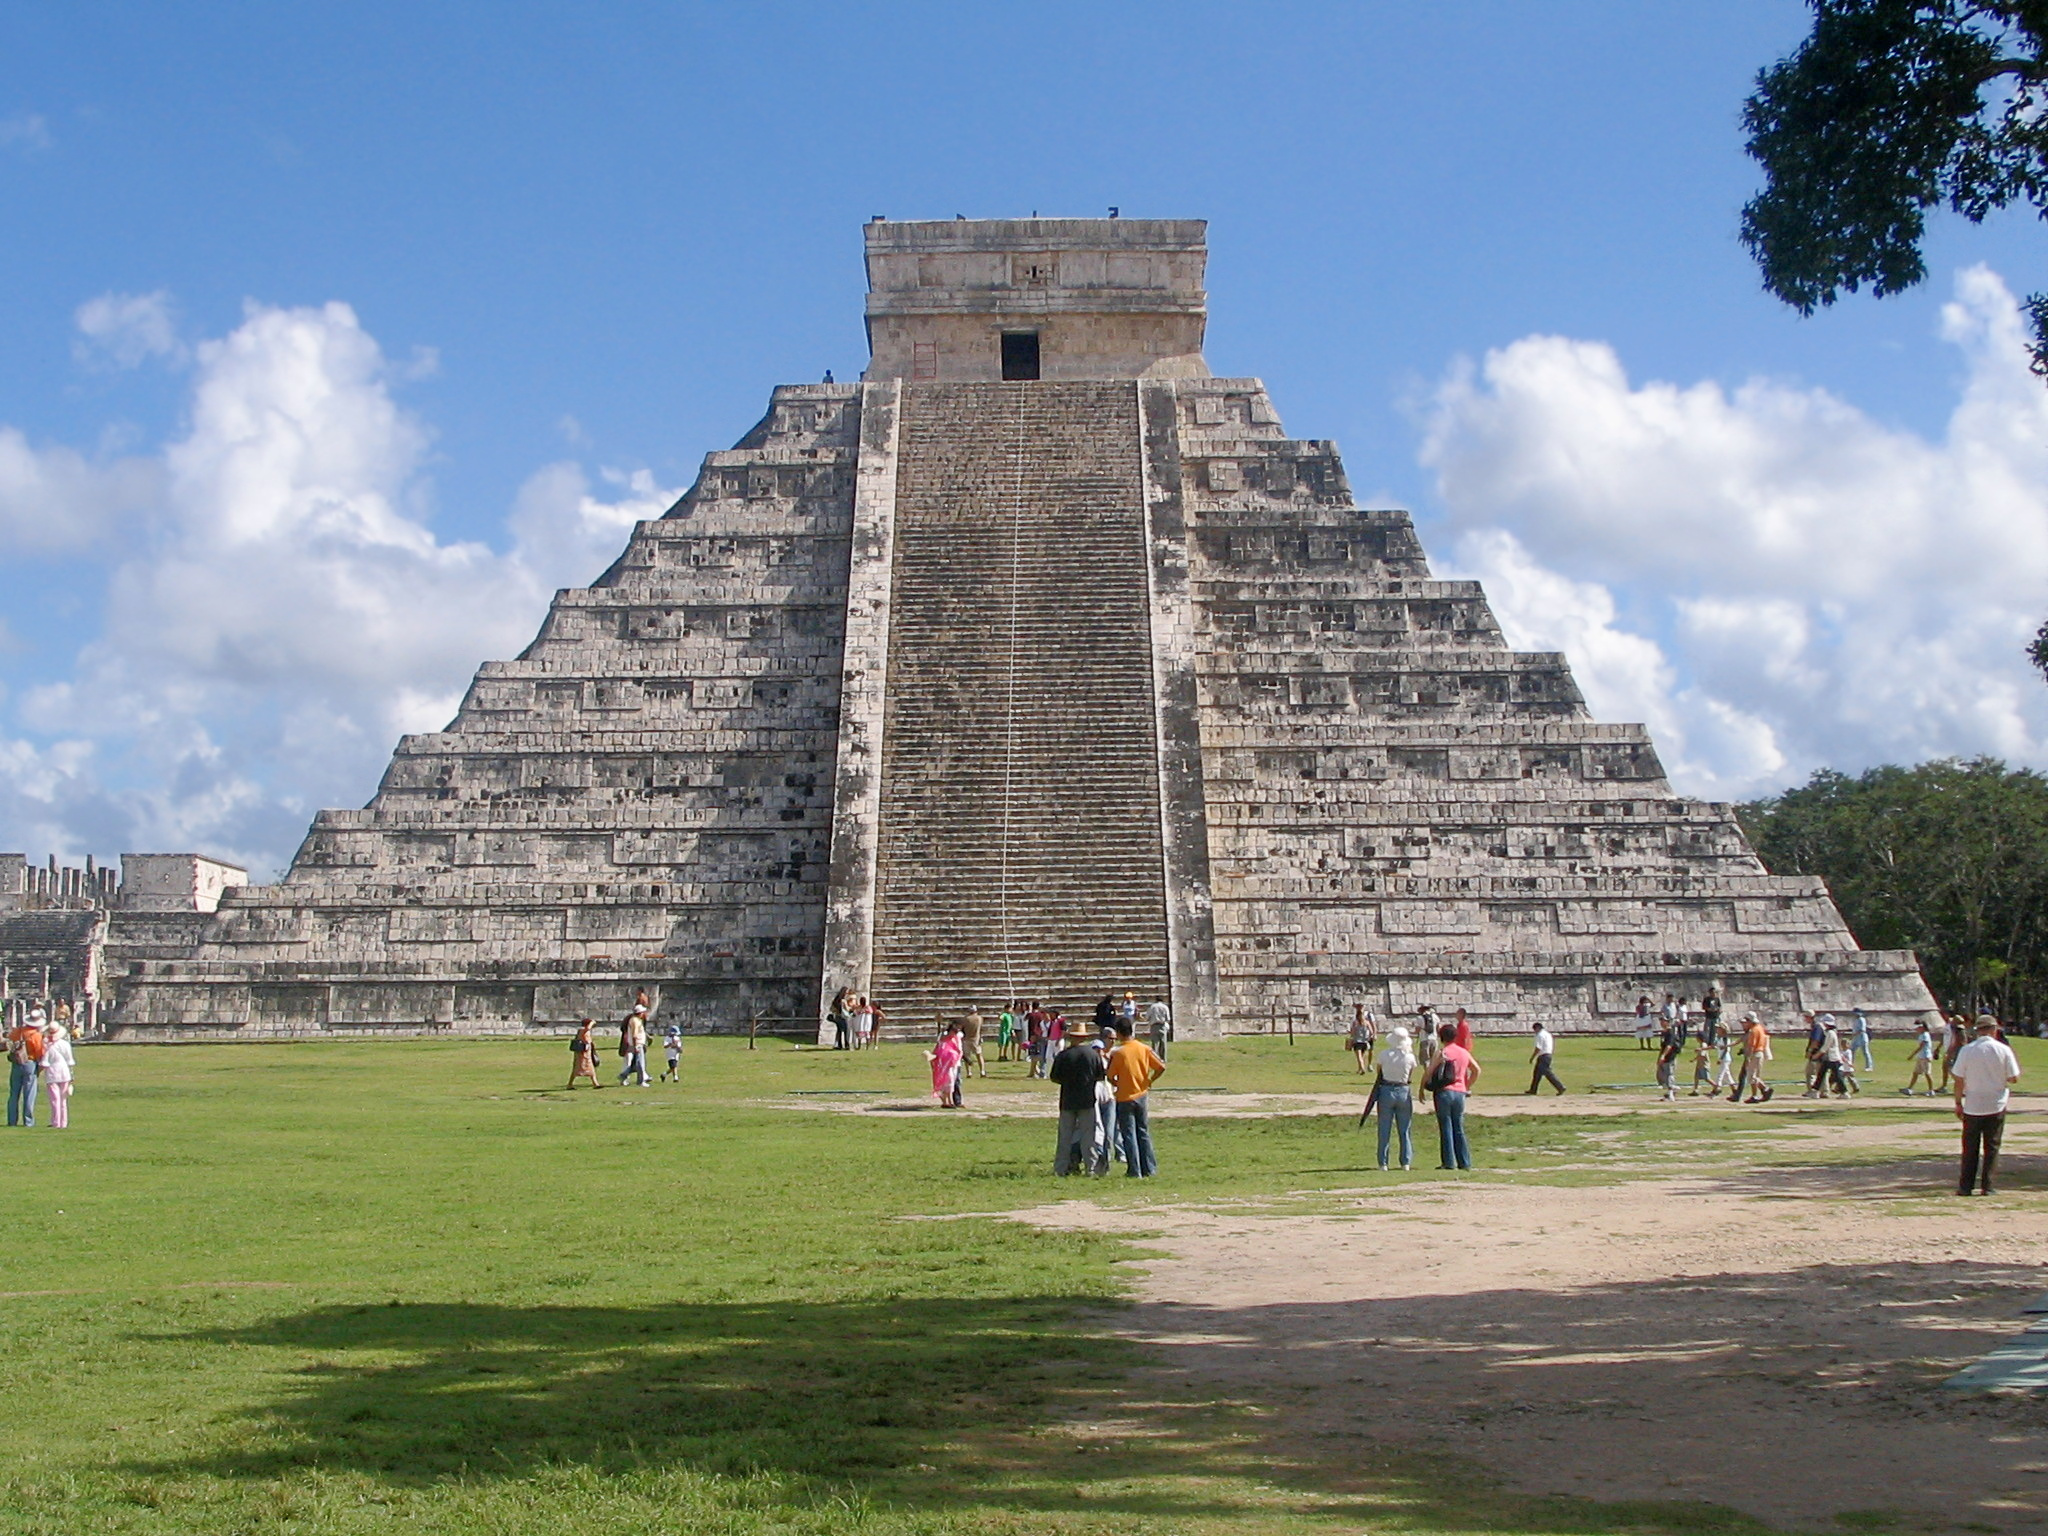 http://upload.wikimedia.org/wikipedia/commons/7/77/Chich%C3%A9n_Itz%C3%A1_pyramid.jpg